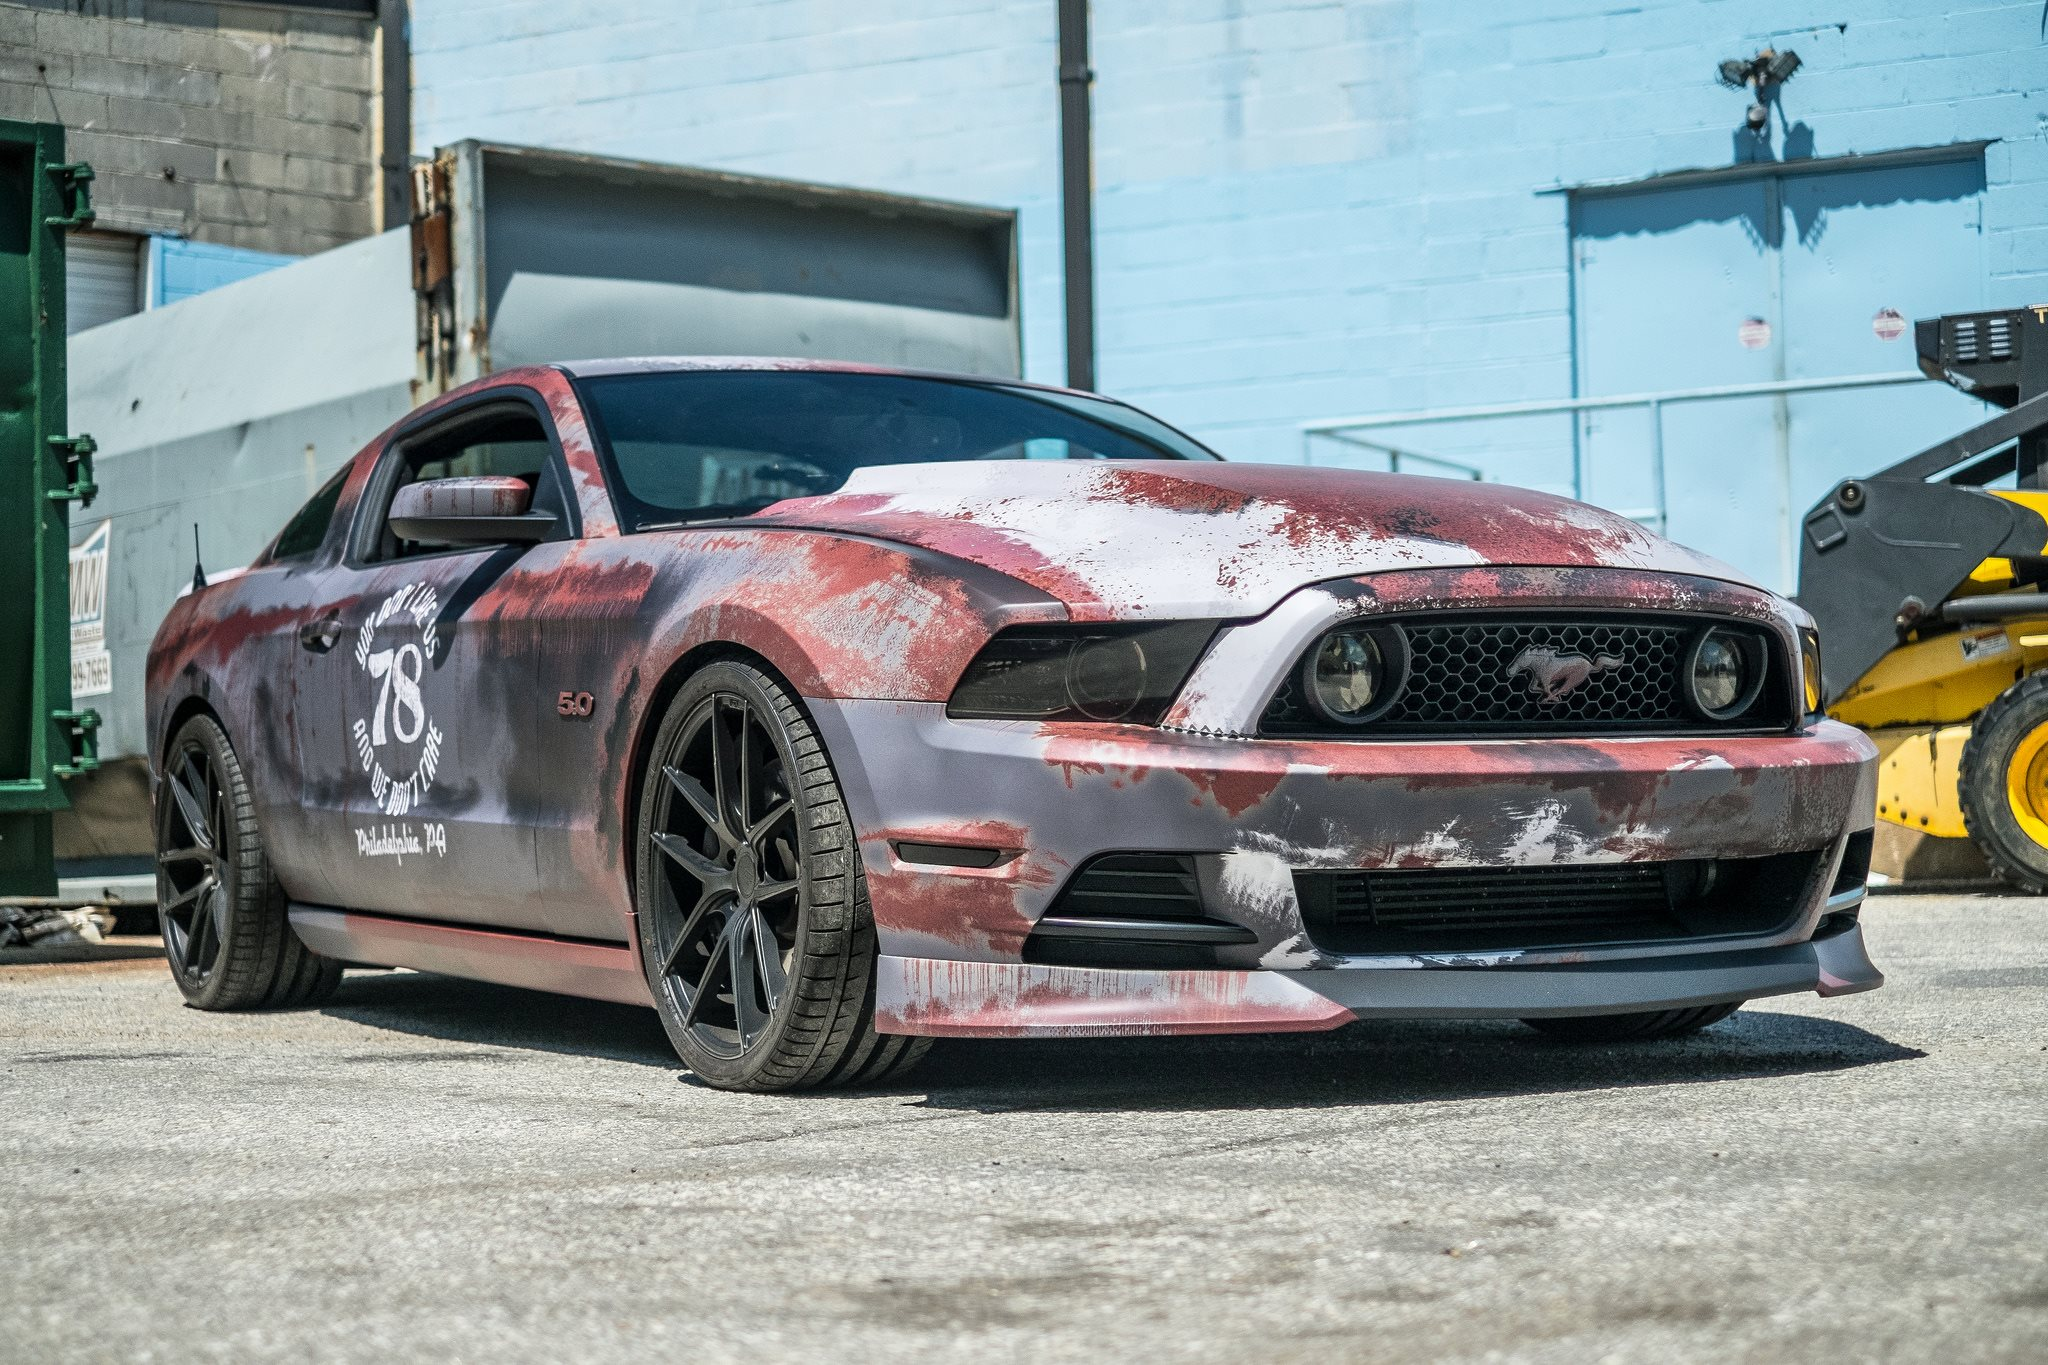 2012 Ford Mustang For Sale >> Crazy Rust Wrapped Ford Mustang in Maryland - GTspirit